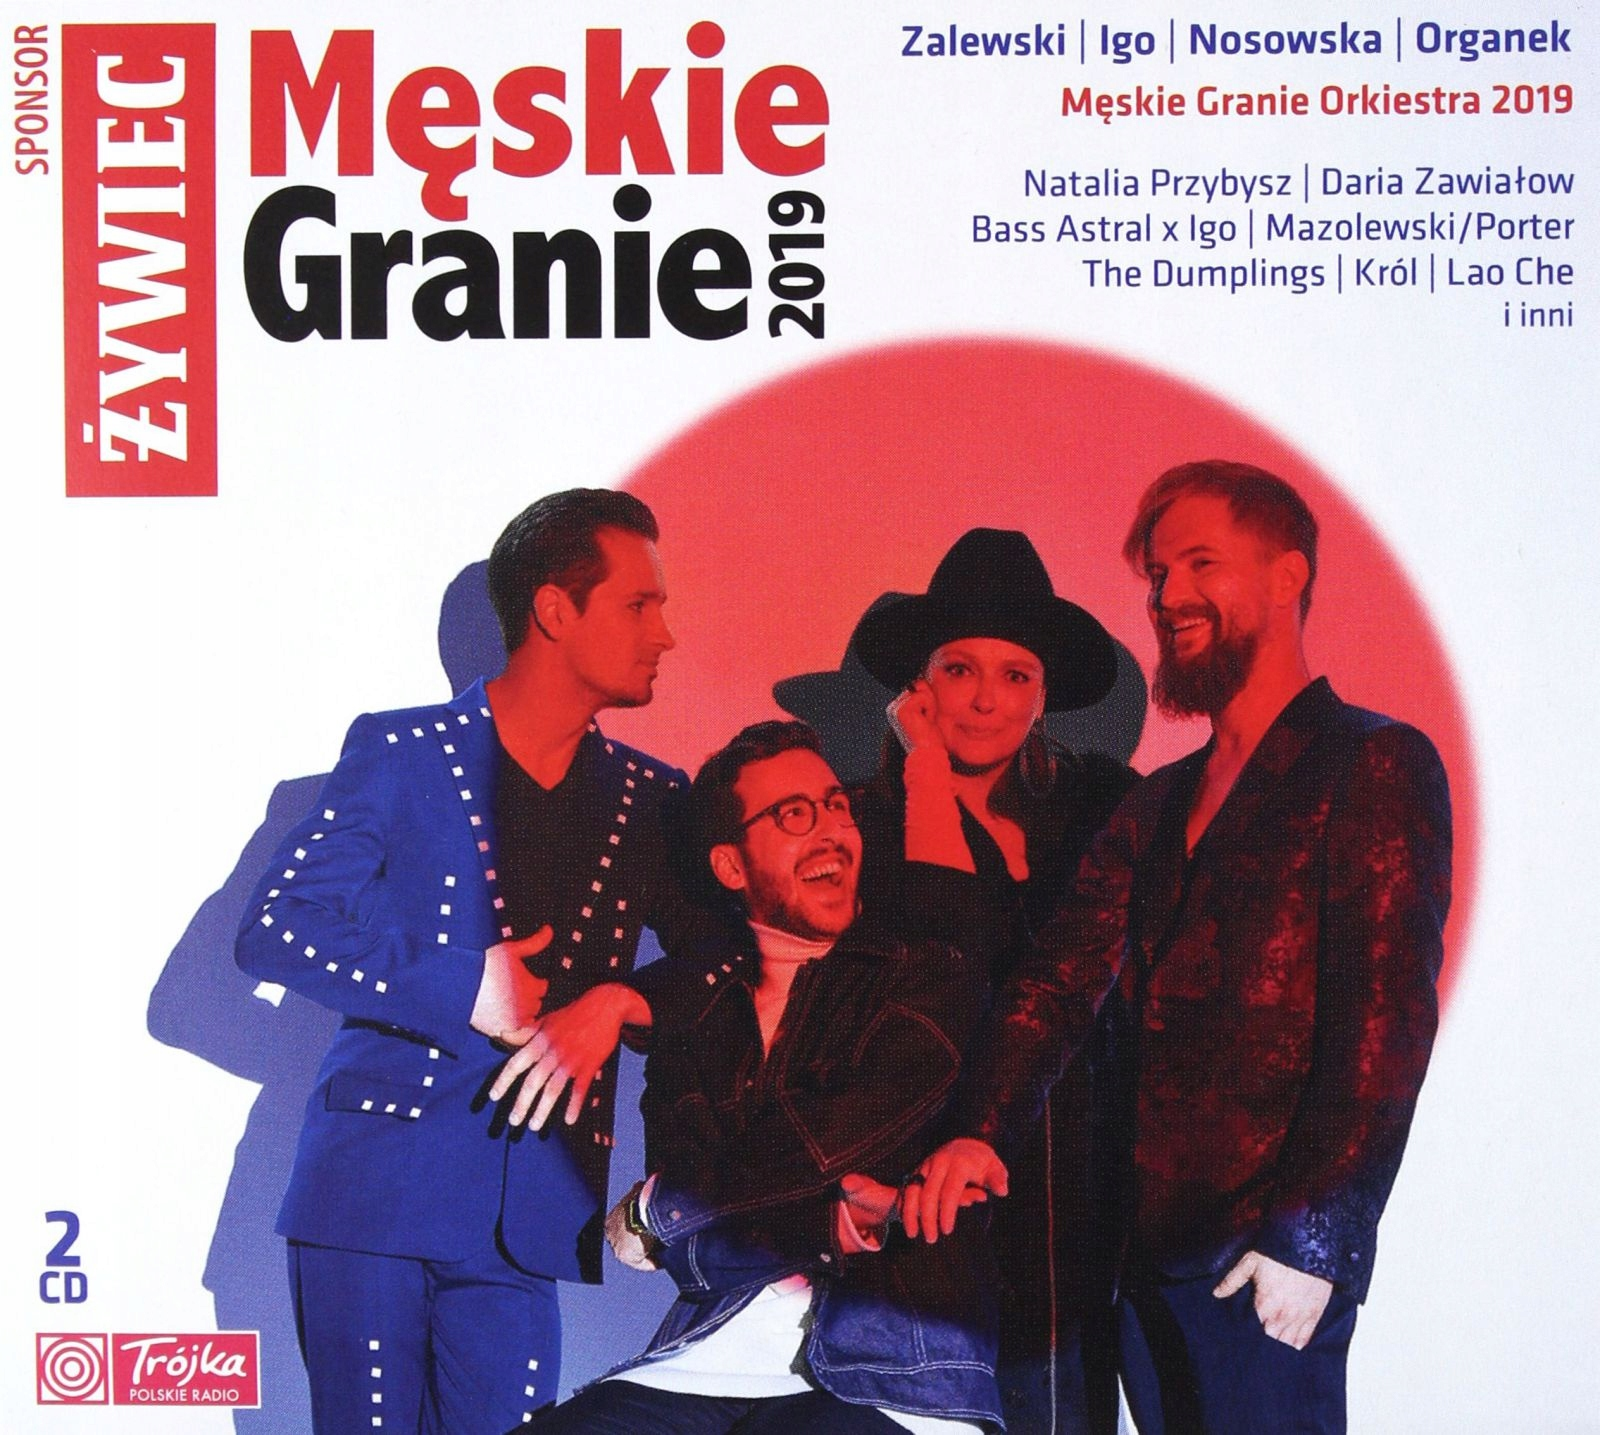 Item THE MEN'S GAME 2019 2CD NOSOWSKA, ZALEWSKI, ORGANEK